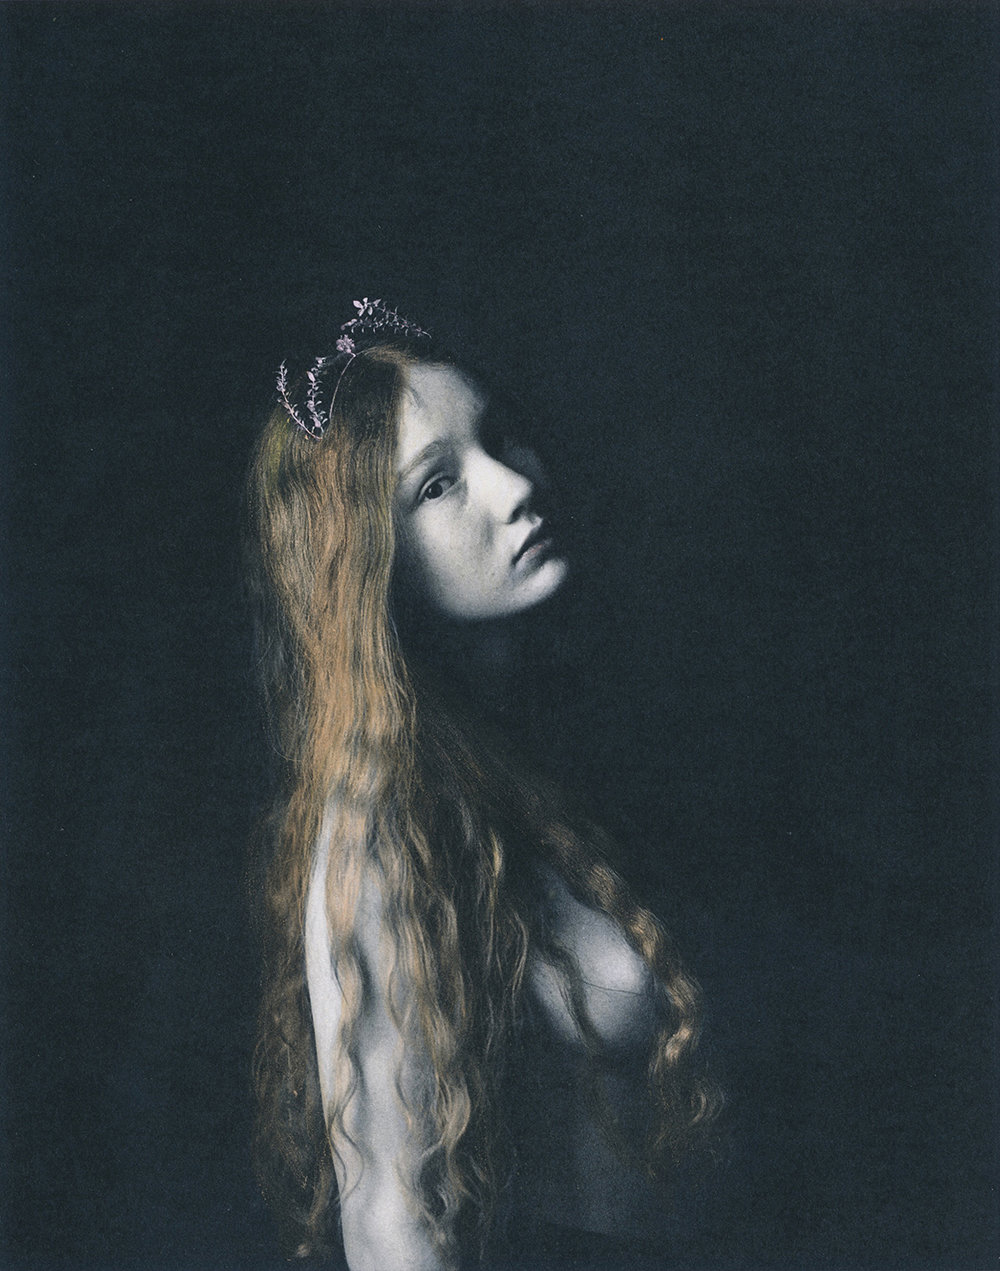 Klara Johanna Michel  Untitled  Archival pigment print 9 x 7, signed and numbered edition of 5 $110